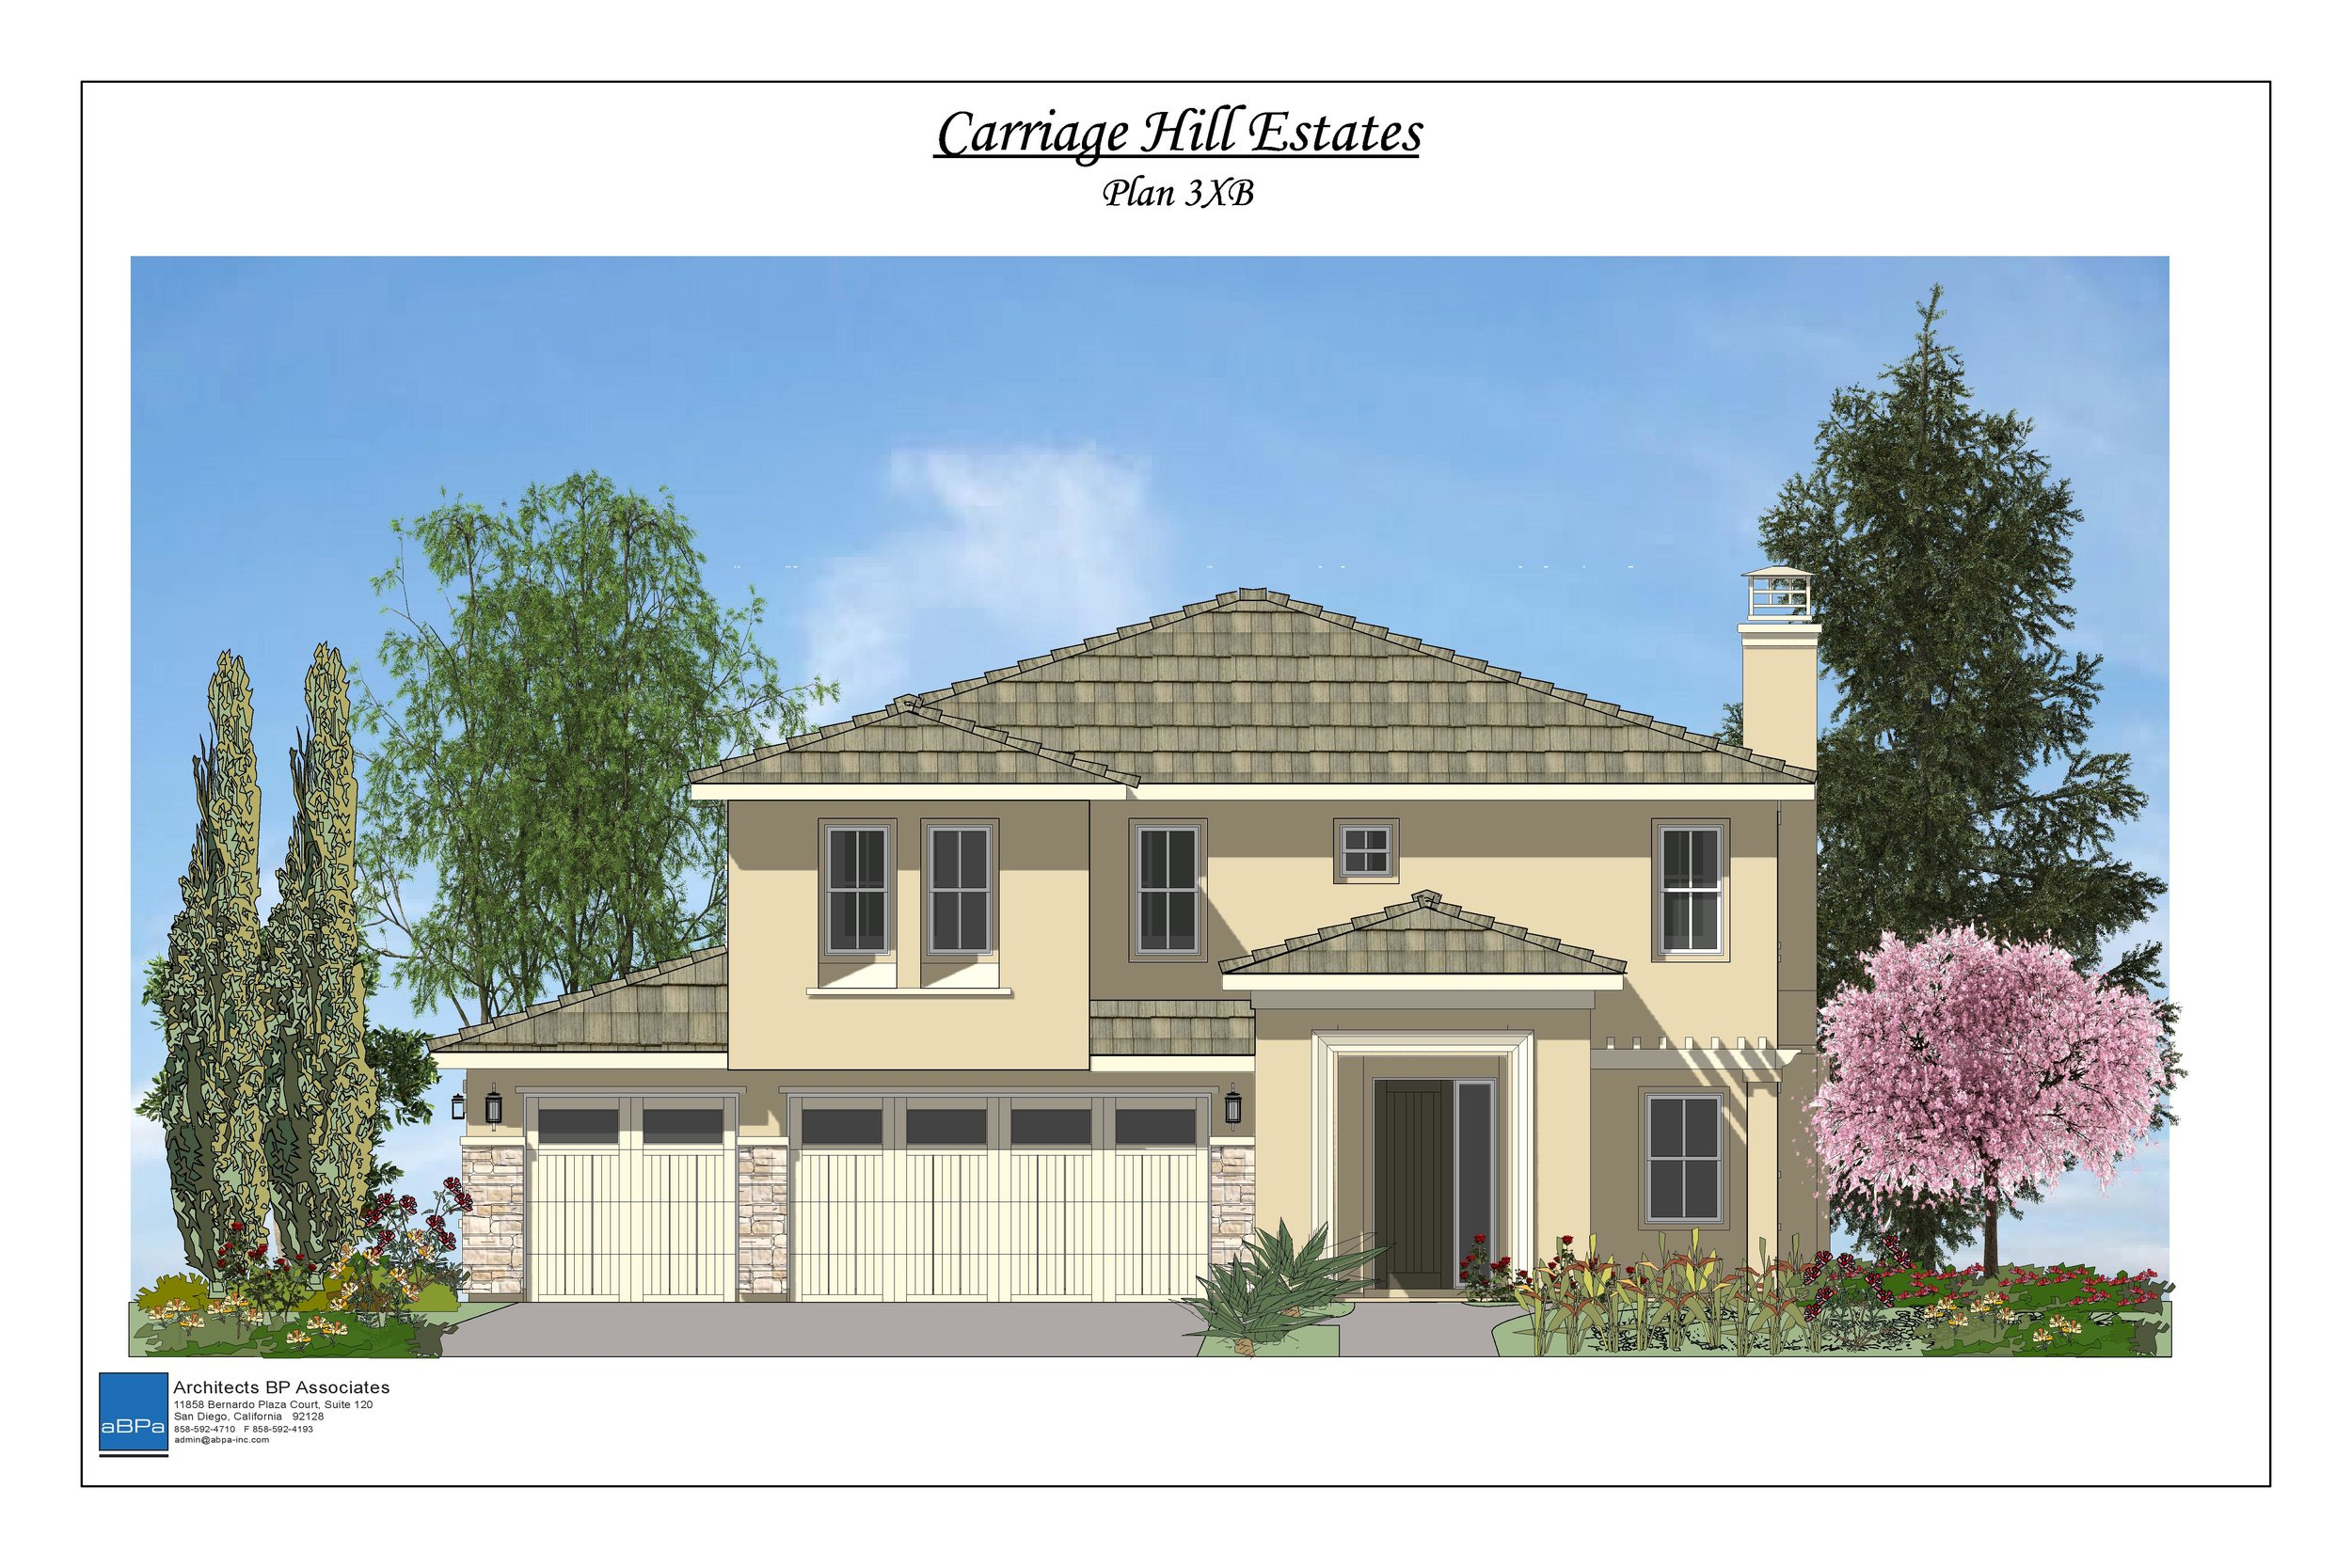 Carriage Hill - Plan 3 Color Elev(040219)-page-003.jpg